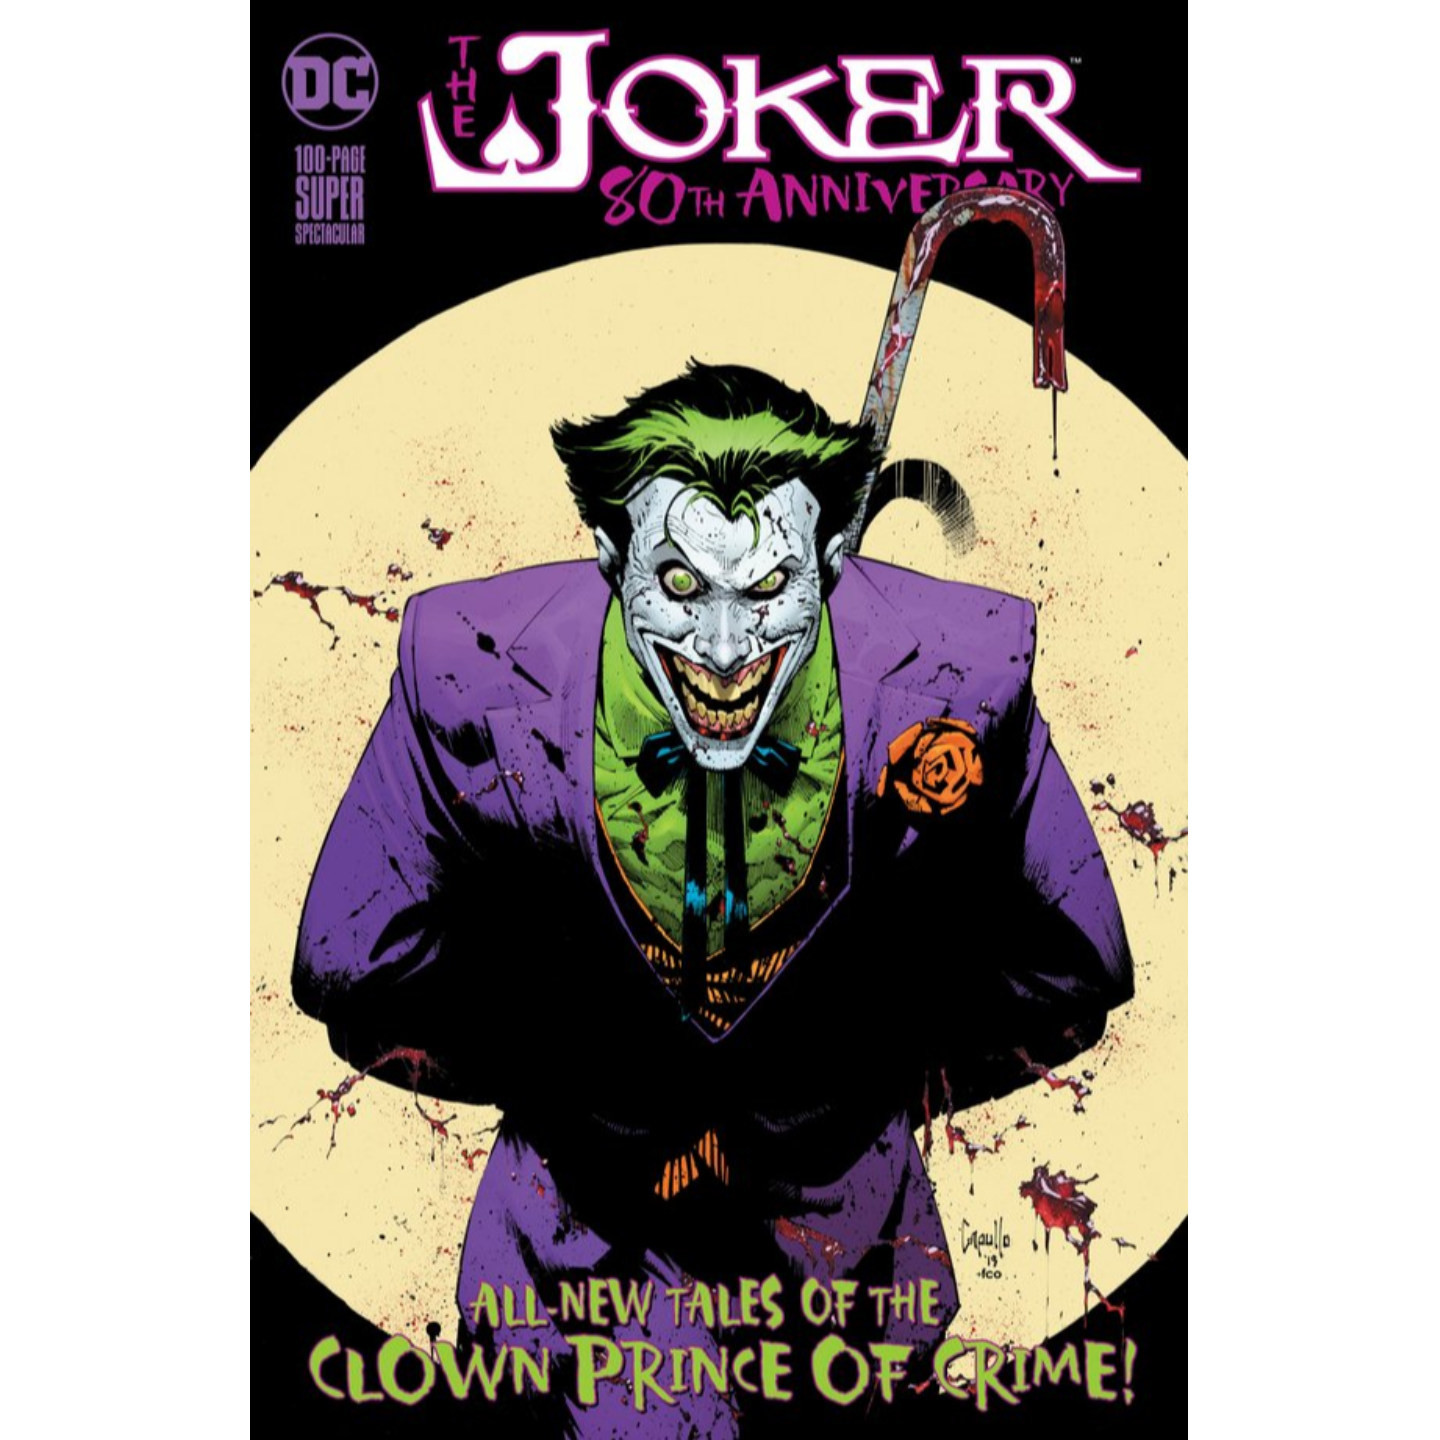 HE JOKER 80TH ANNIVERSARY 100-PAGE SUPER SPECTACULAR 1